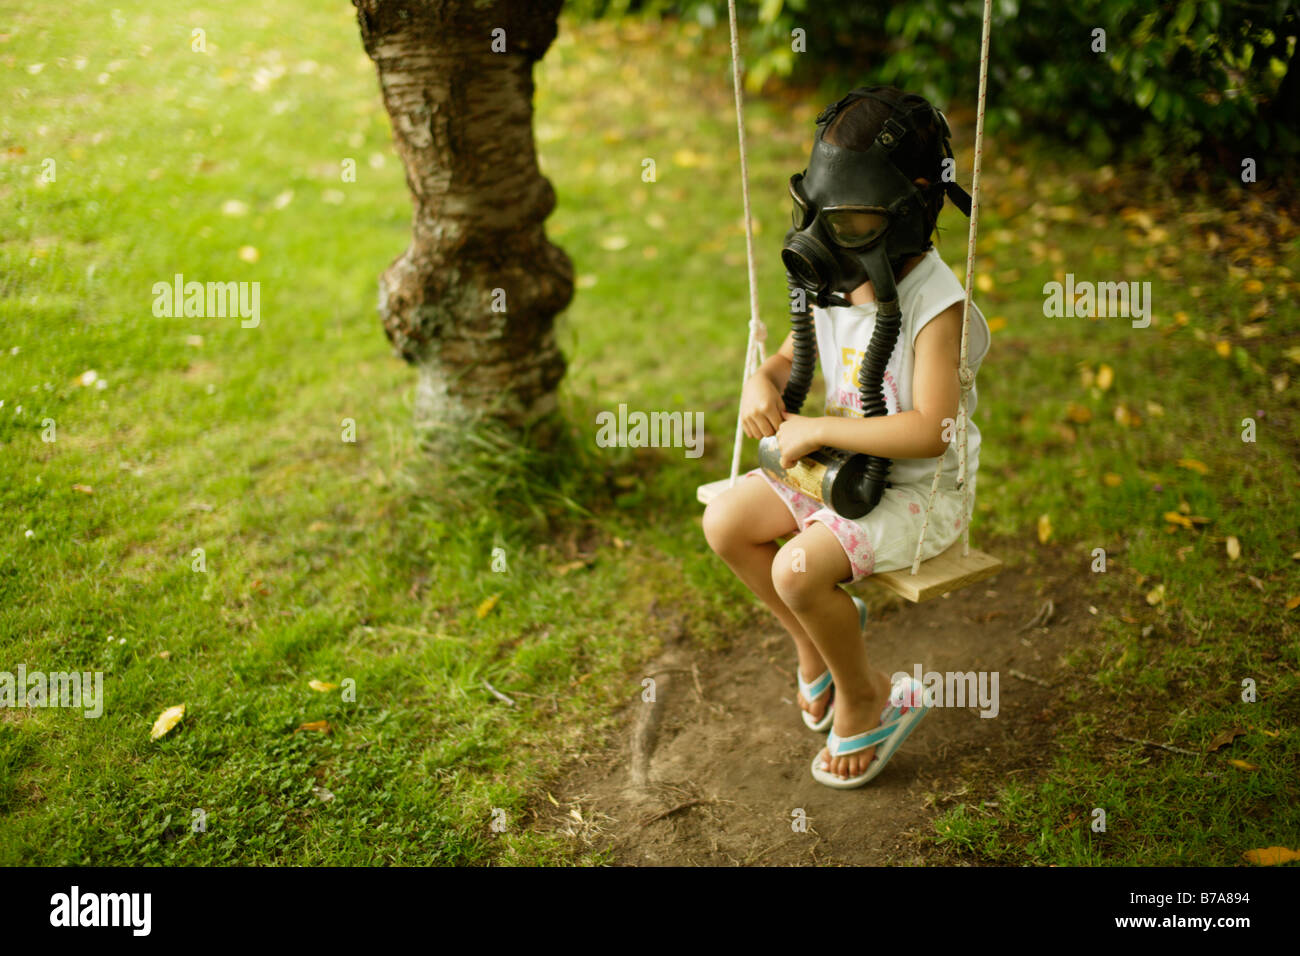 Five year old girl sits on swing wearing a gas mask - Stock Image